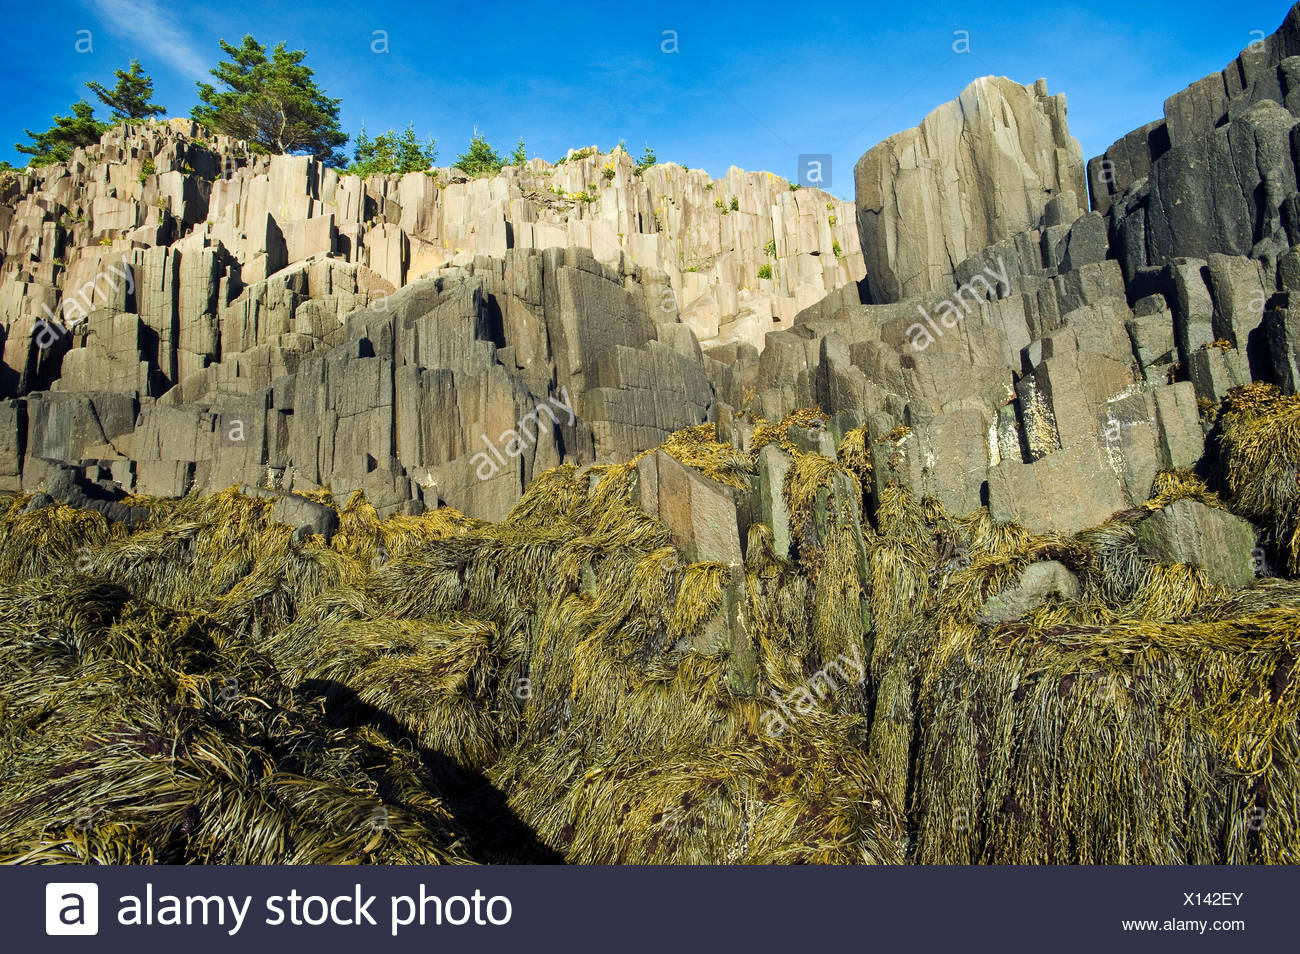 basalt rock cliffs, Brier Island, Bay of Fundy, Nova Scotia, Canada - Stock Image